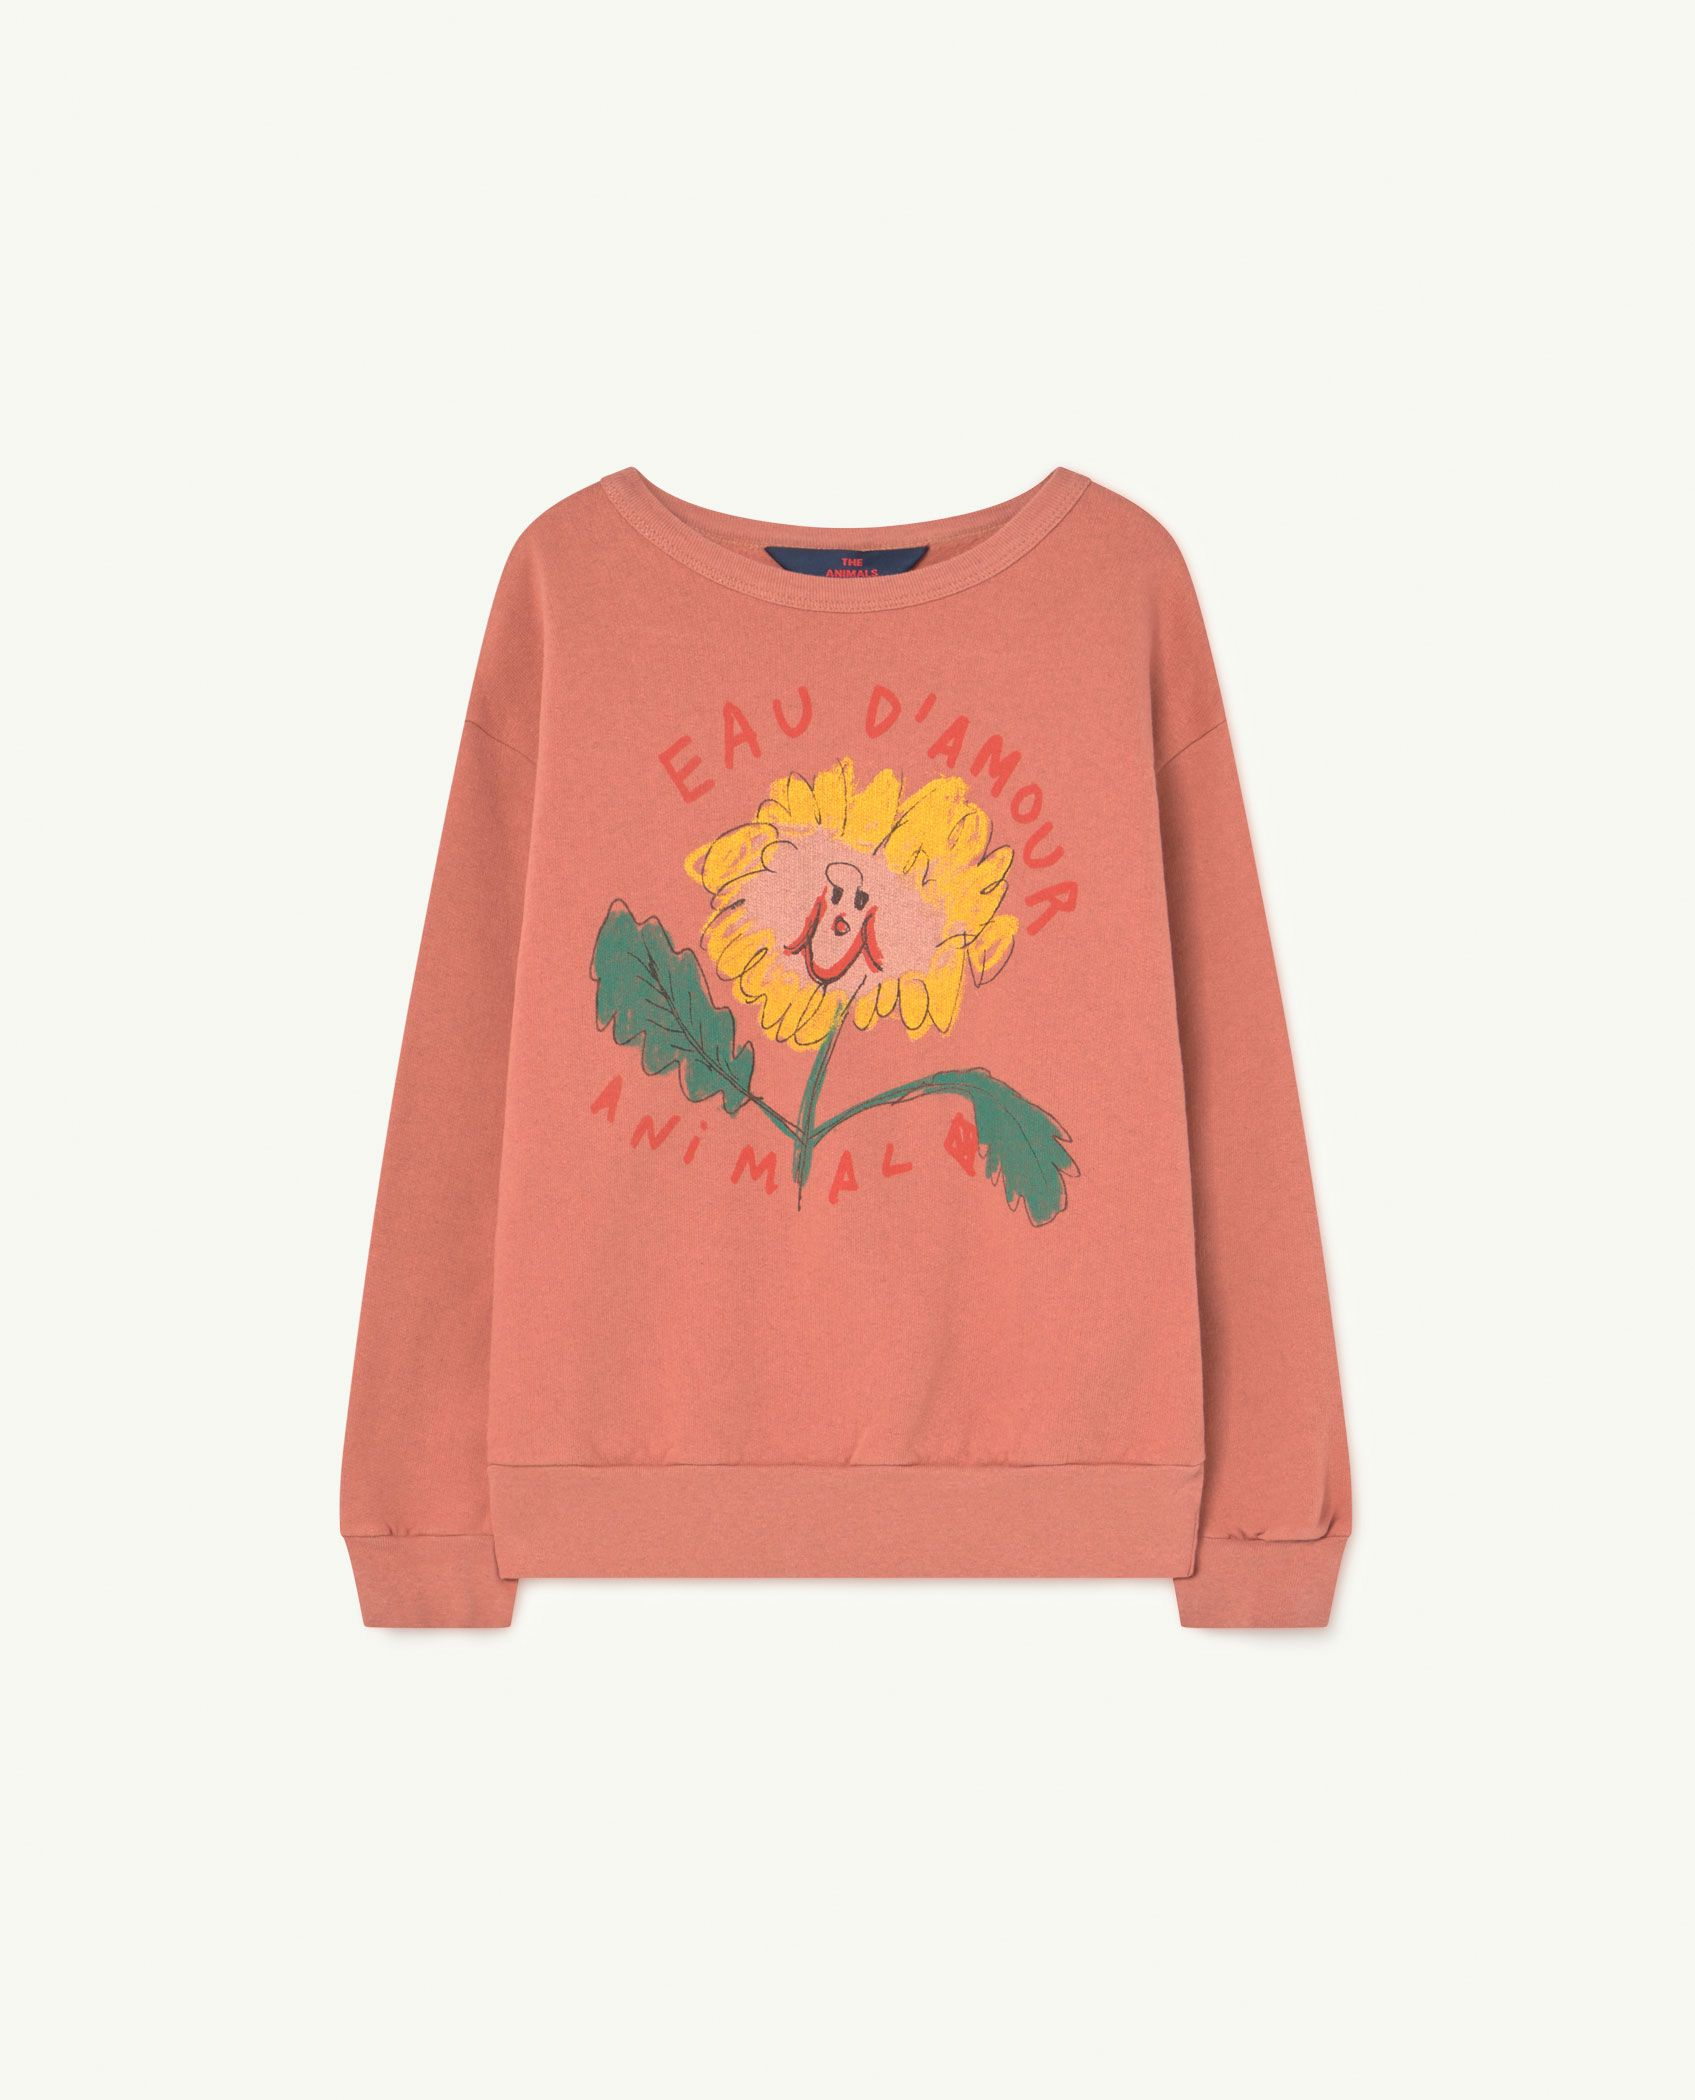 Recycled Soft Rose Eau d'Amour Bear Sweatshirt img-1